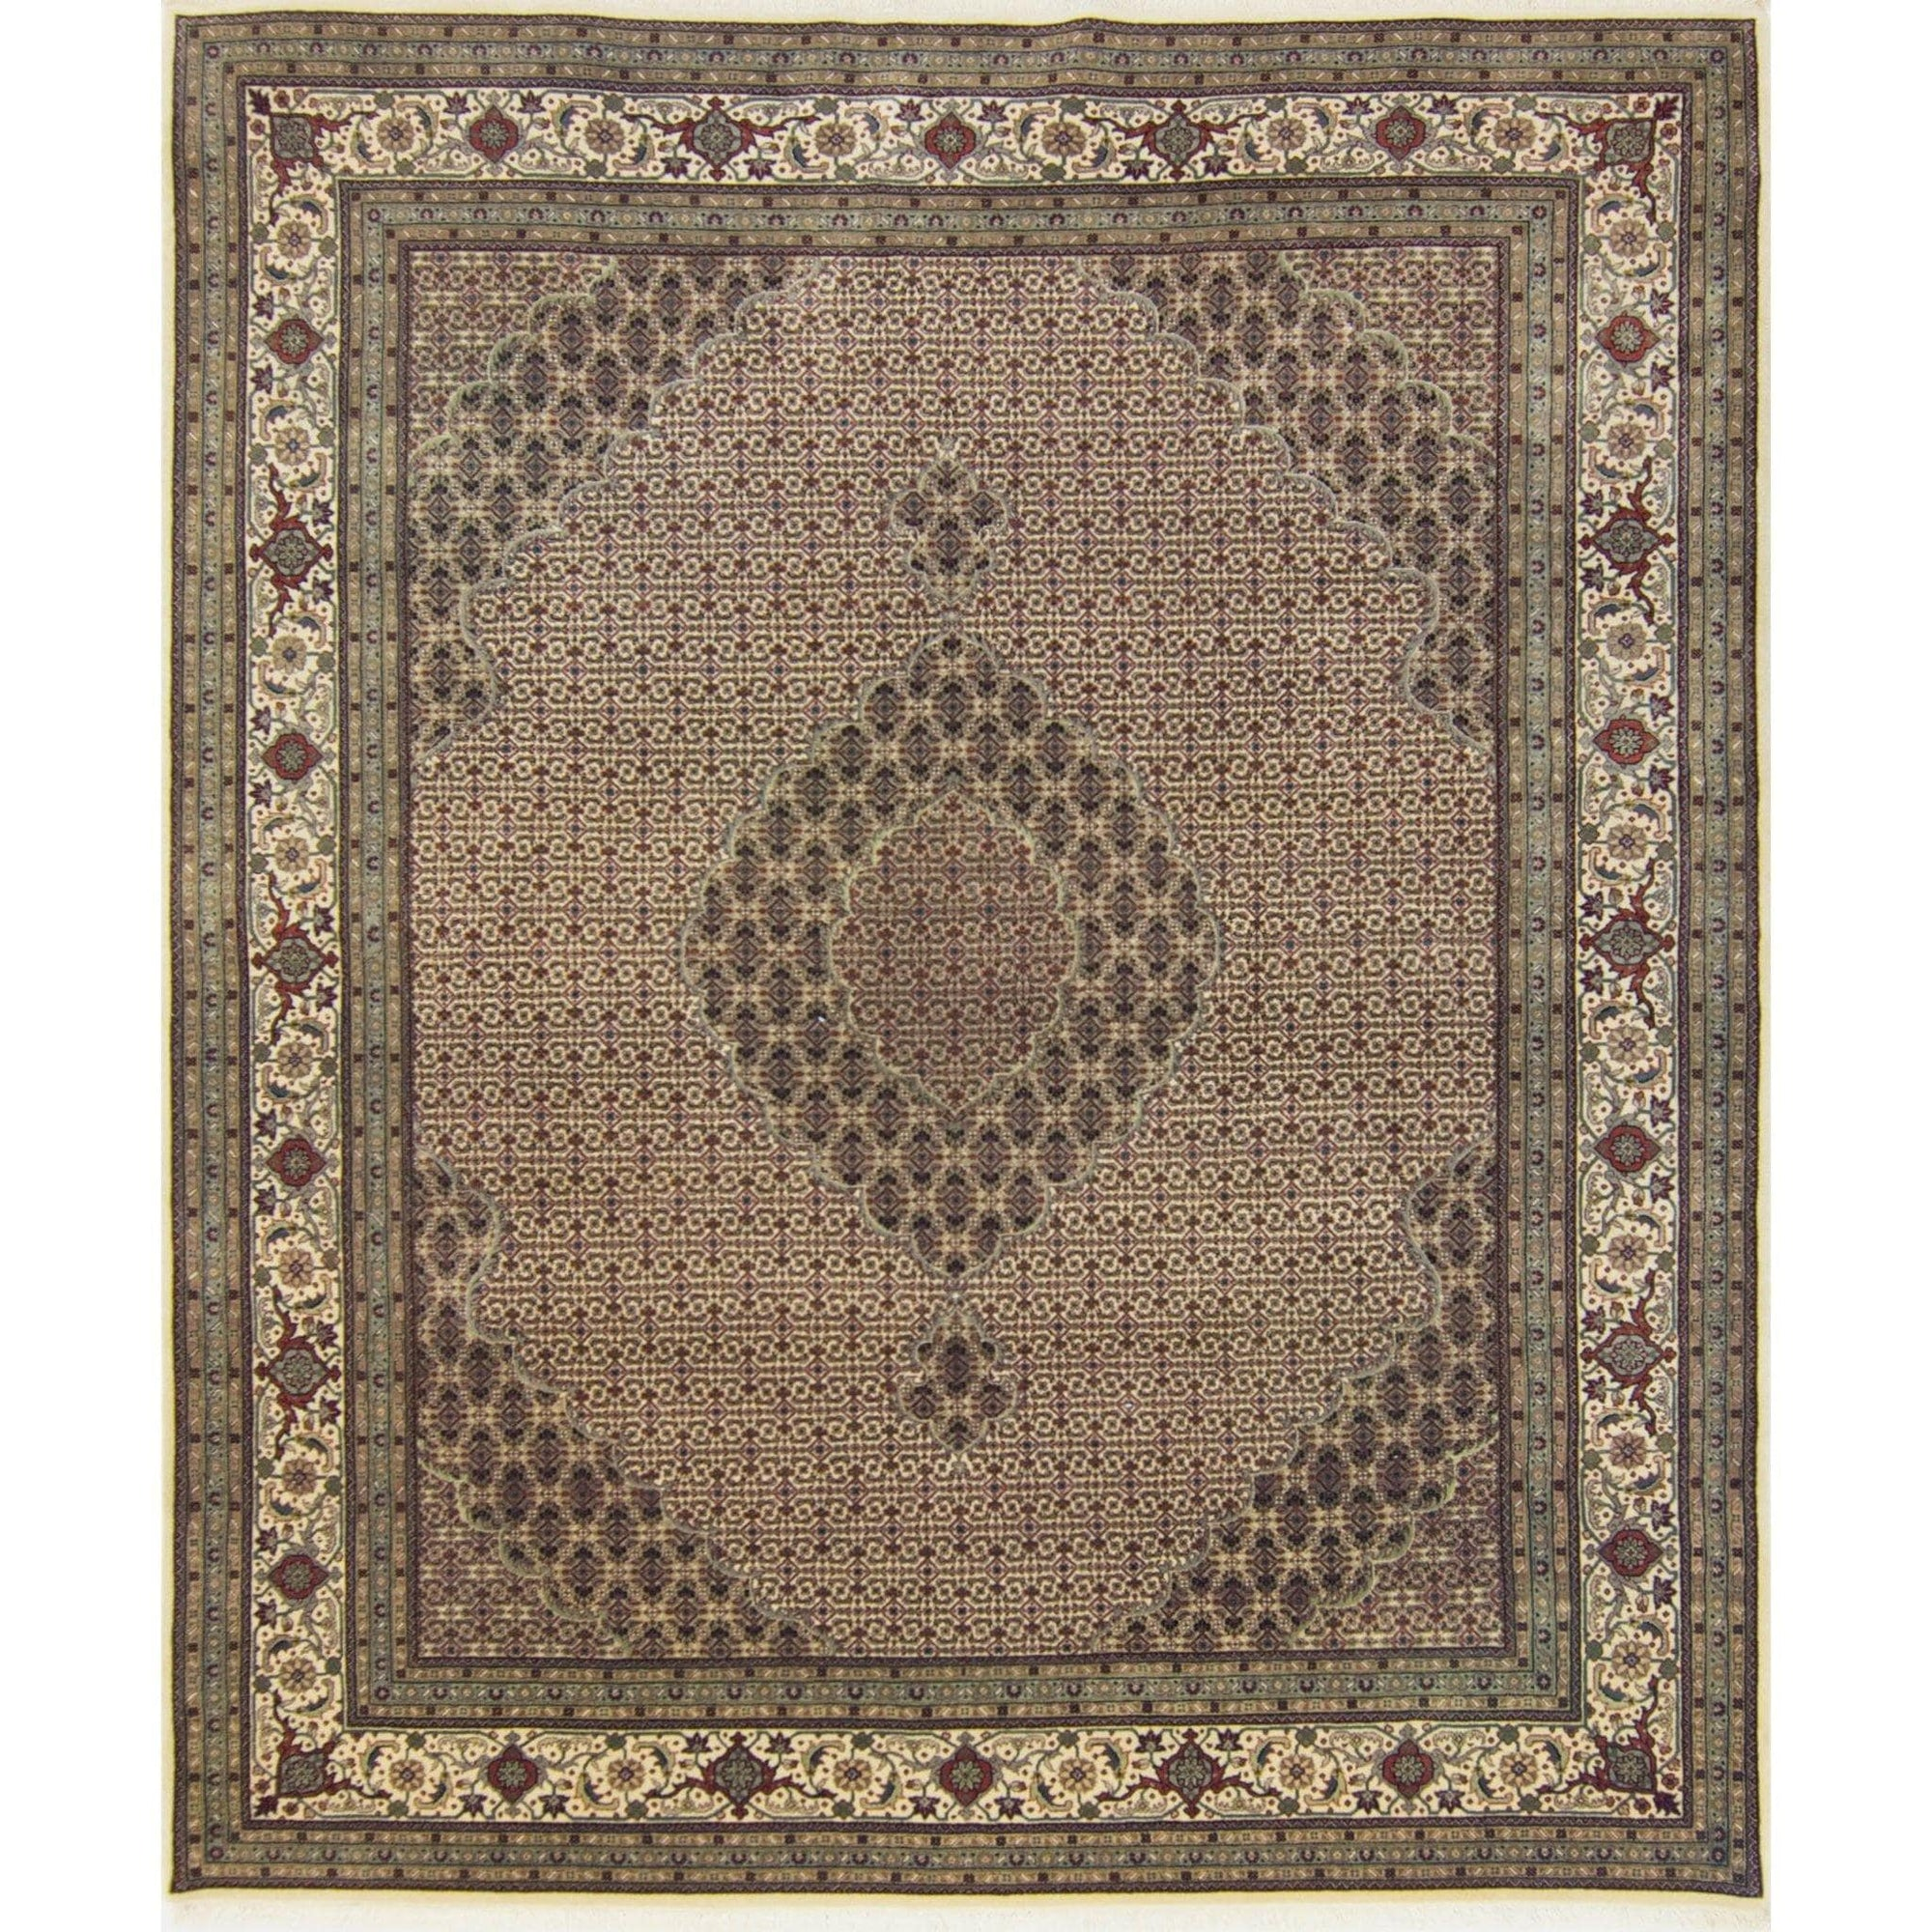 Super Fine Hand-knotted Wool and Silk Tabriz - Mahi Rug 248 cm x 305 cm Persian-Rug | House-of-Haghi | NewMarket | Auckland | NZ | Handmade Persian Rugs | Hand Knotted Persian Rugs